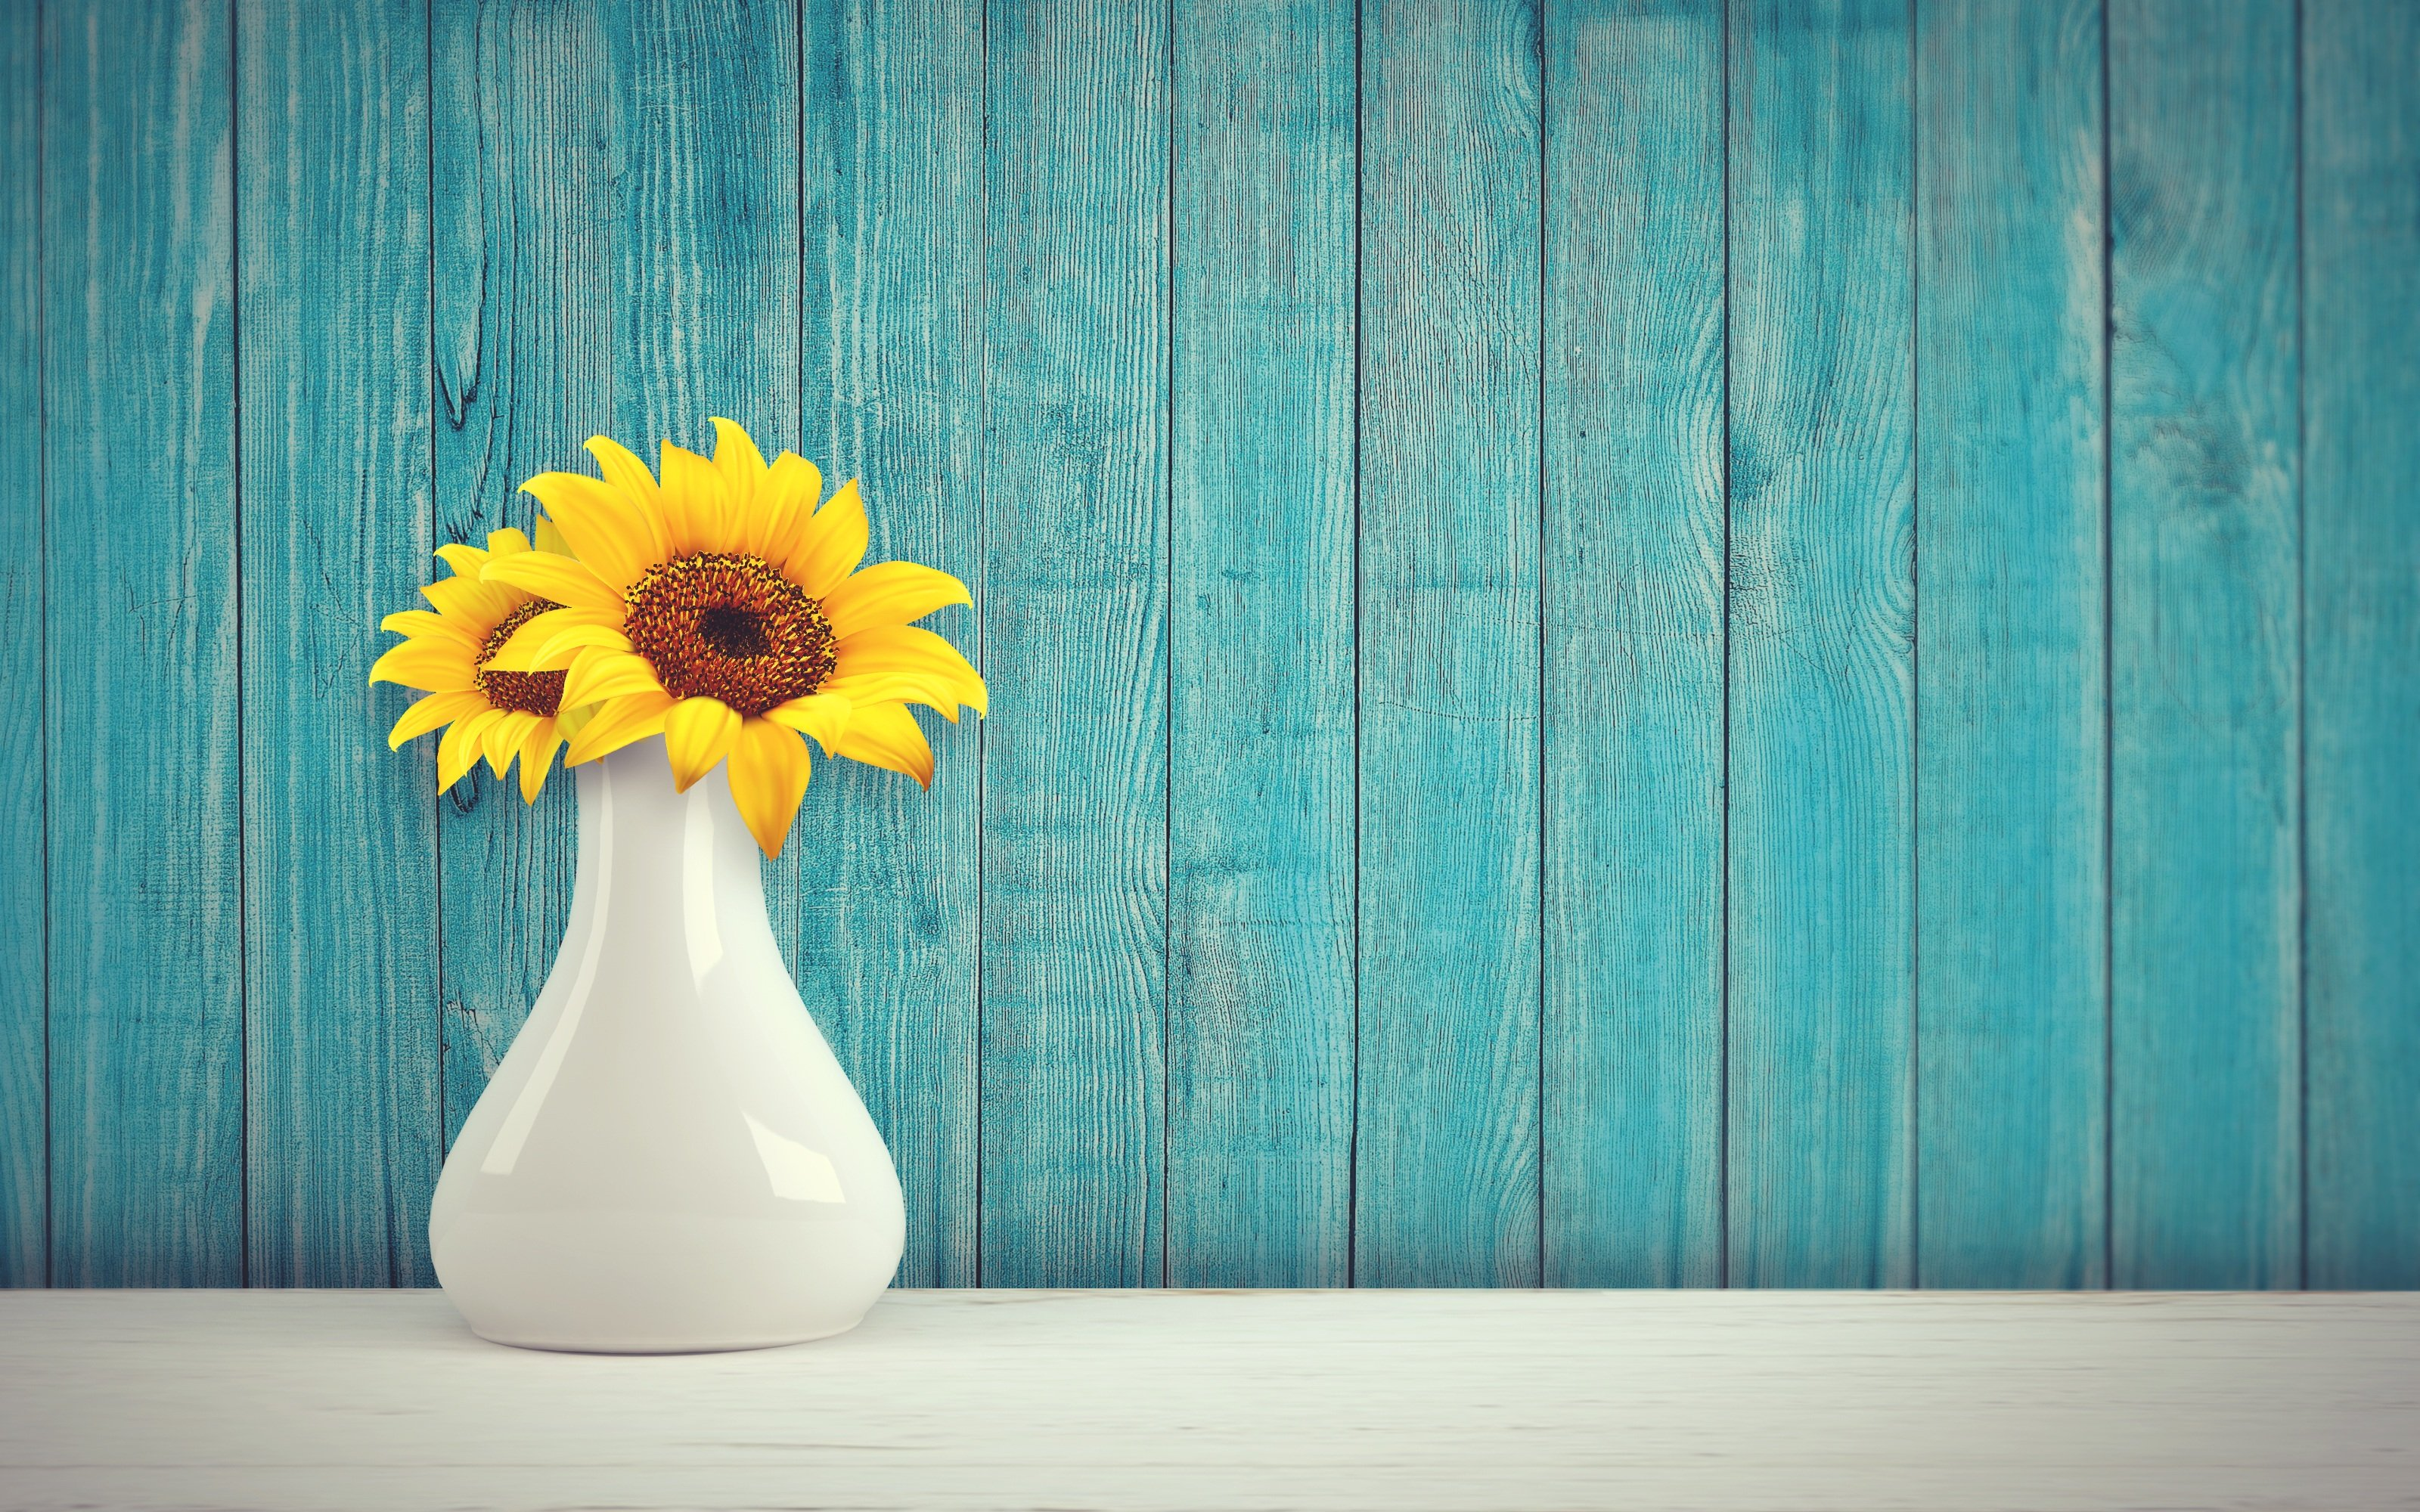 Sunflower vase vintage retro wall